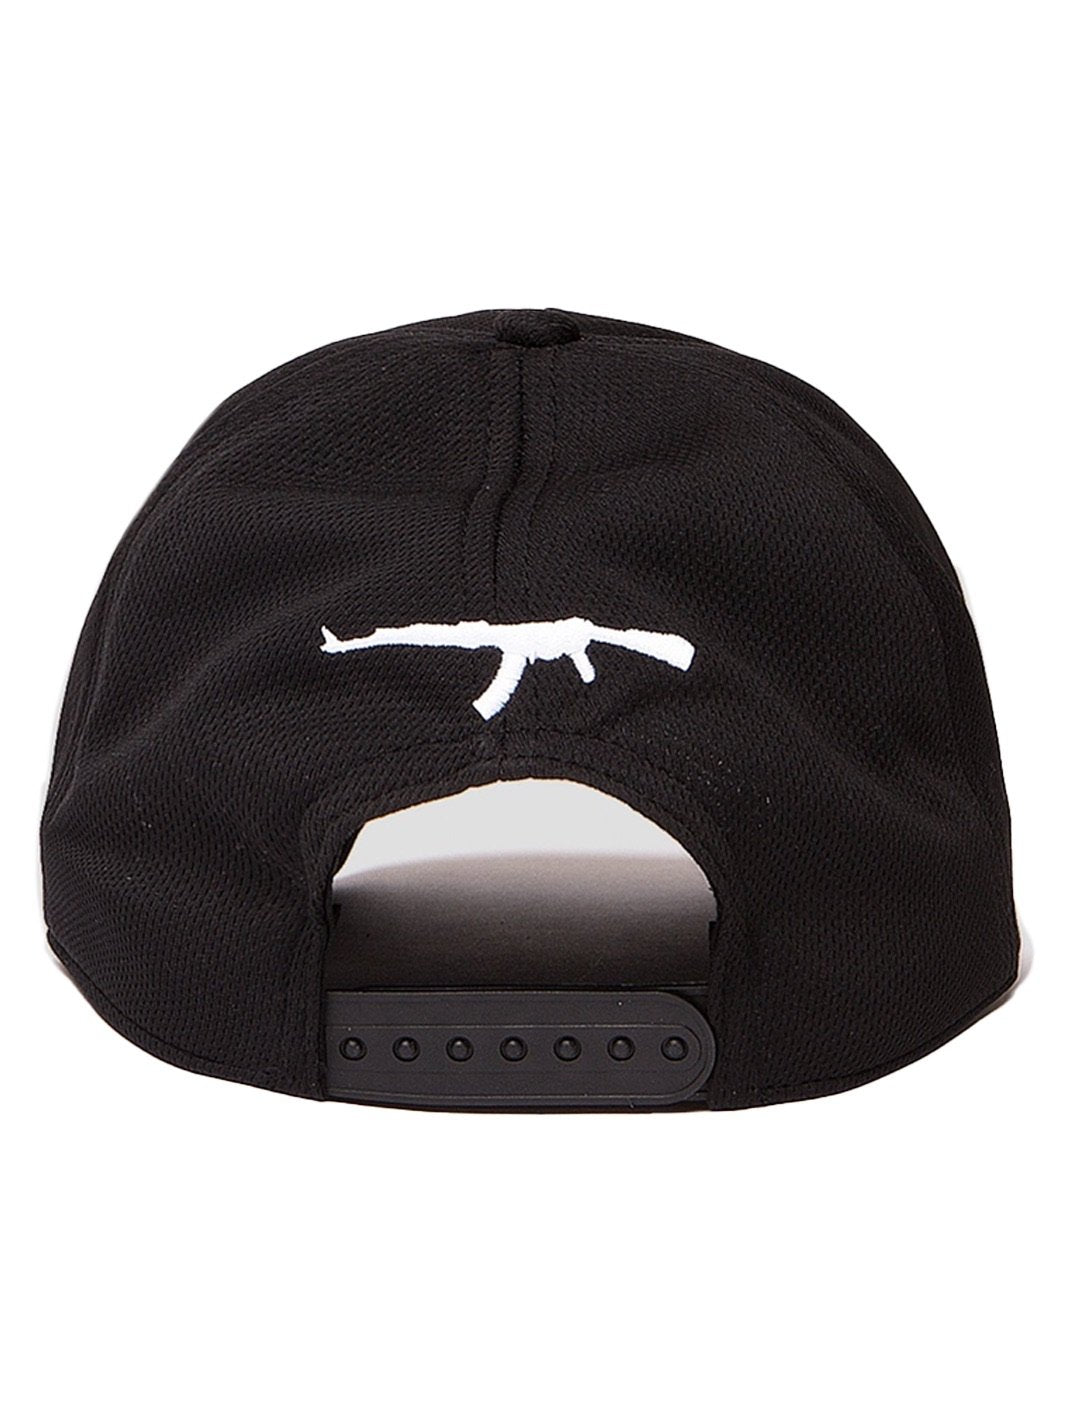 Ball Cap Black - The Bobby Boga